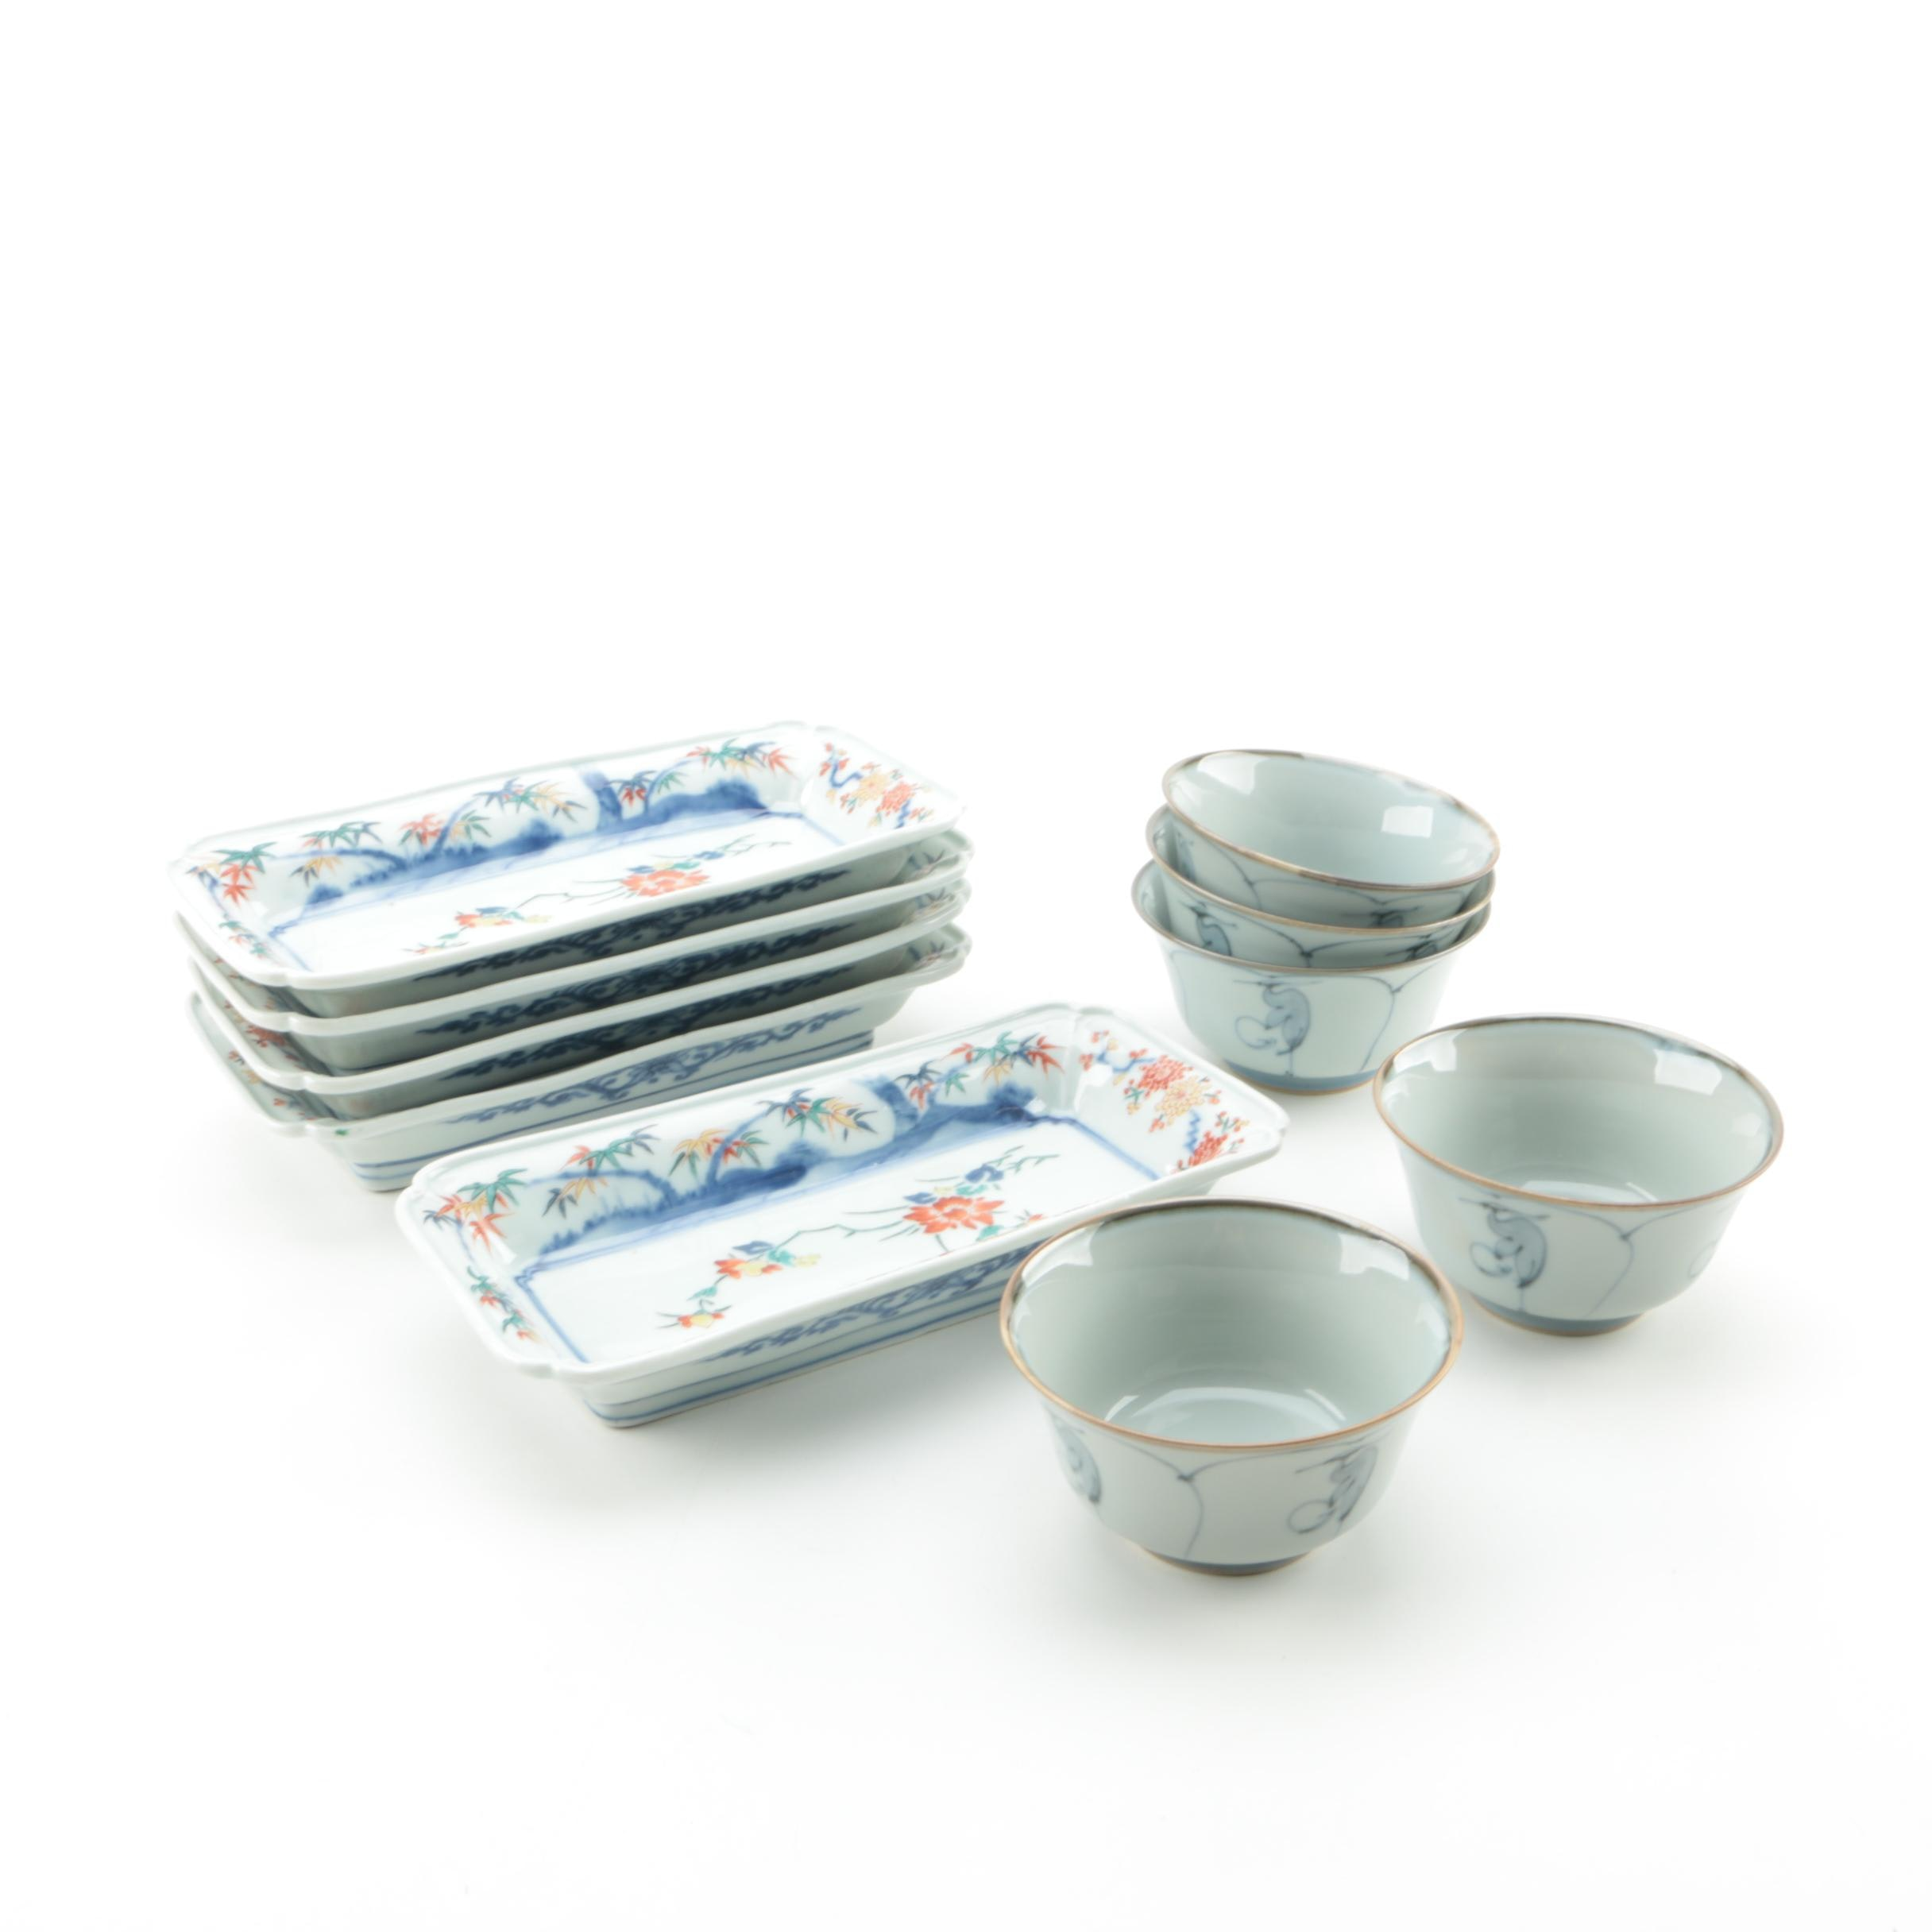 Asian-Inspired Porcelain Dishes